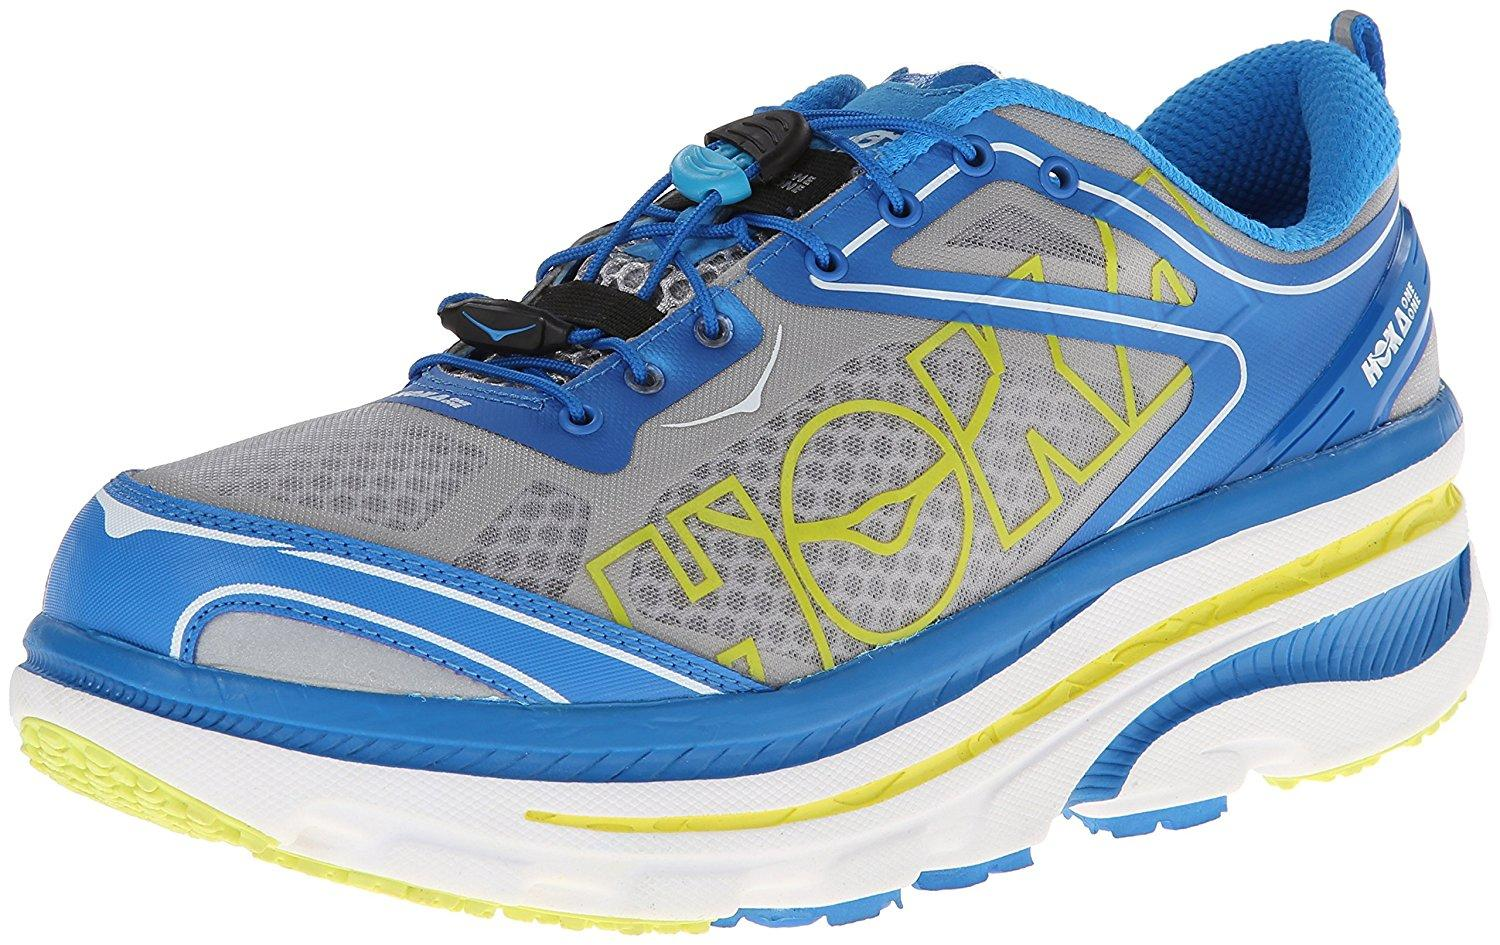 the Hoka One One Bondi 3 is a comfortable maximalist shoe